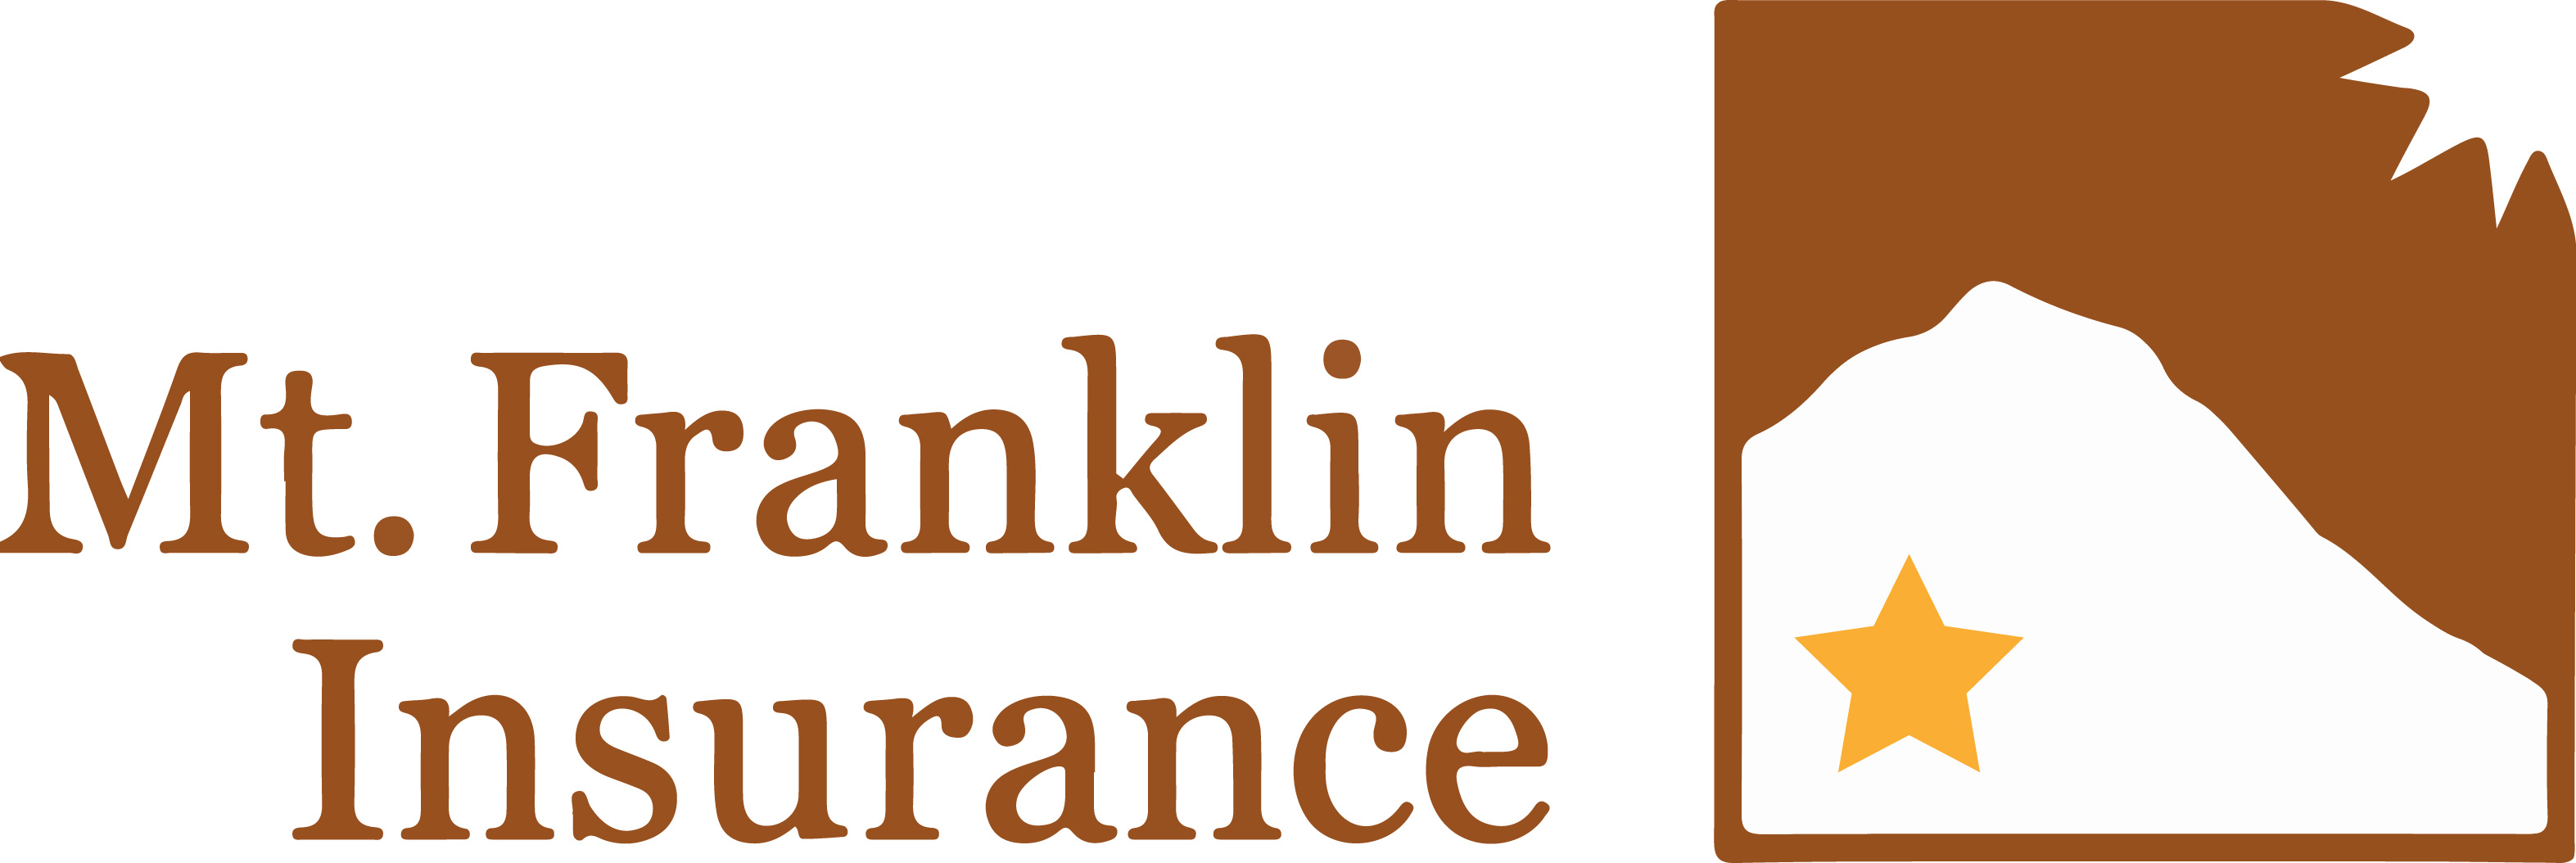 Mt. Franklin Insurance